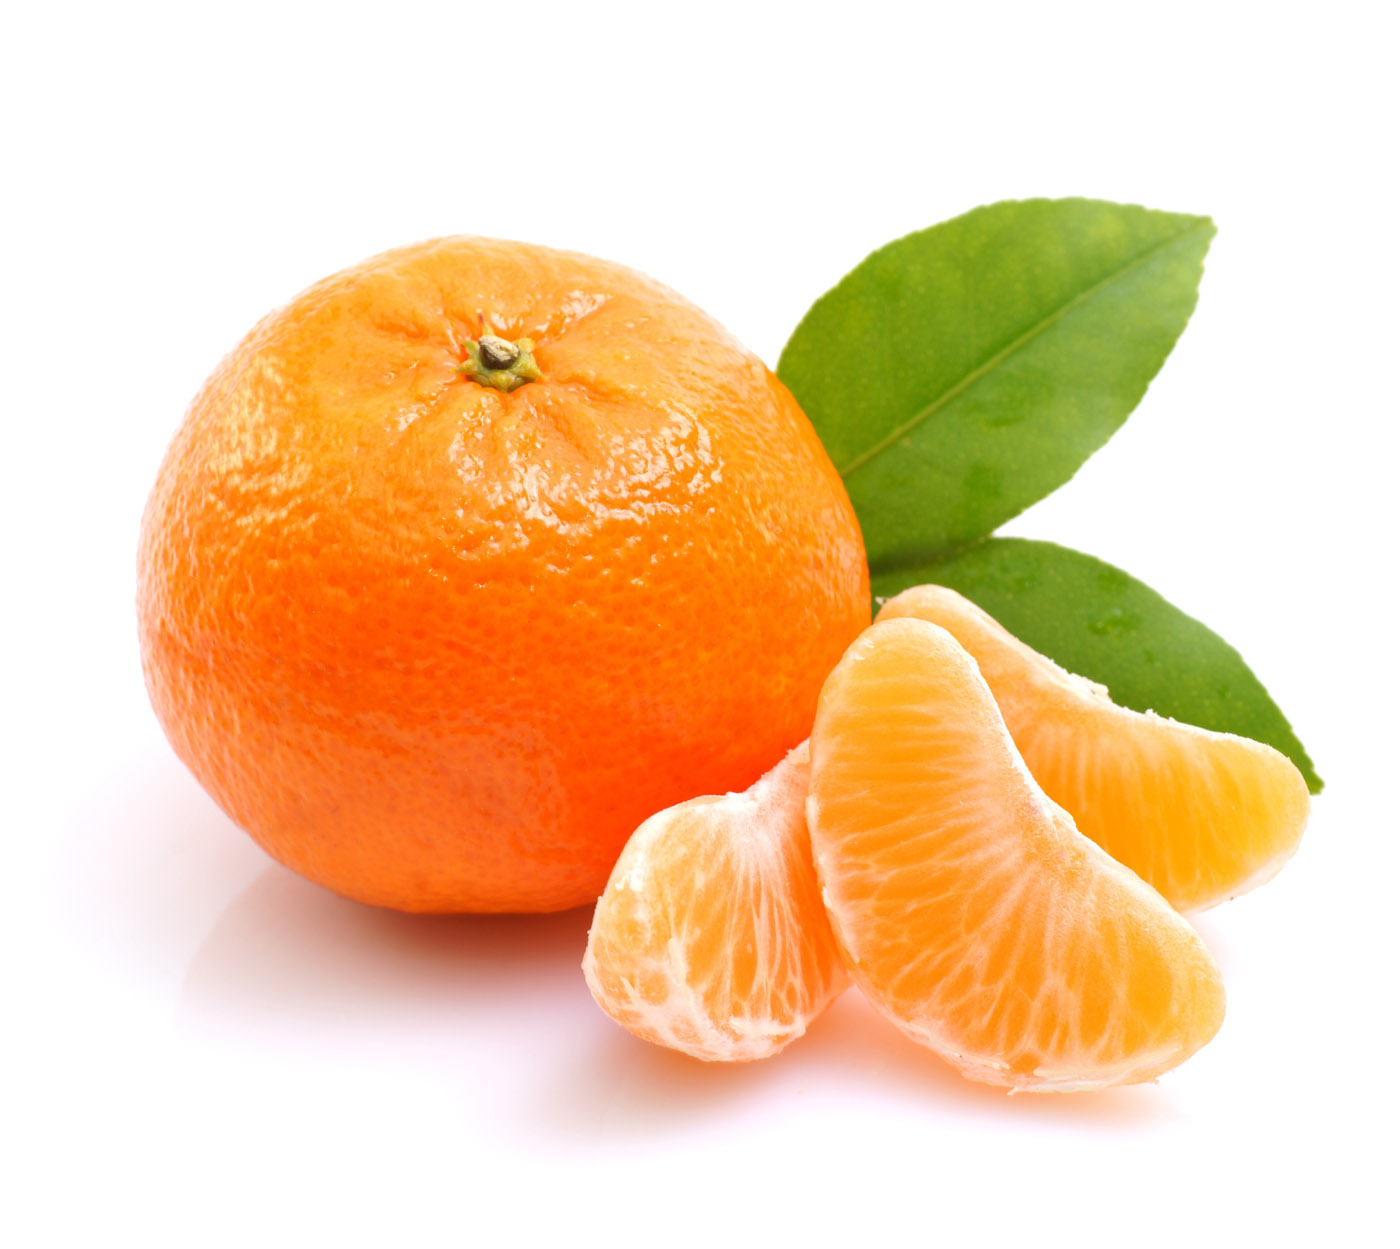 Tasty Sweet Orange Mandarin 1916.68 Kb